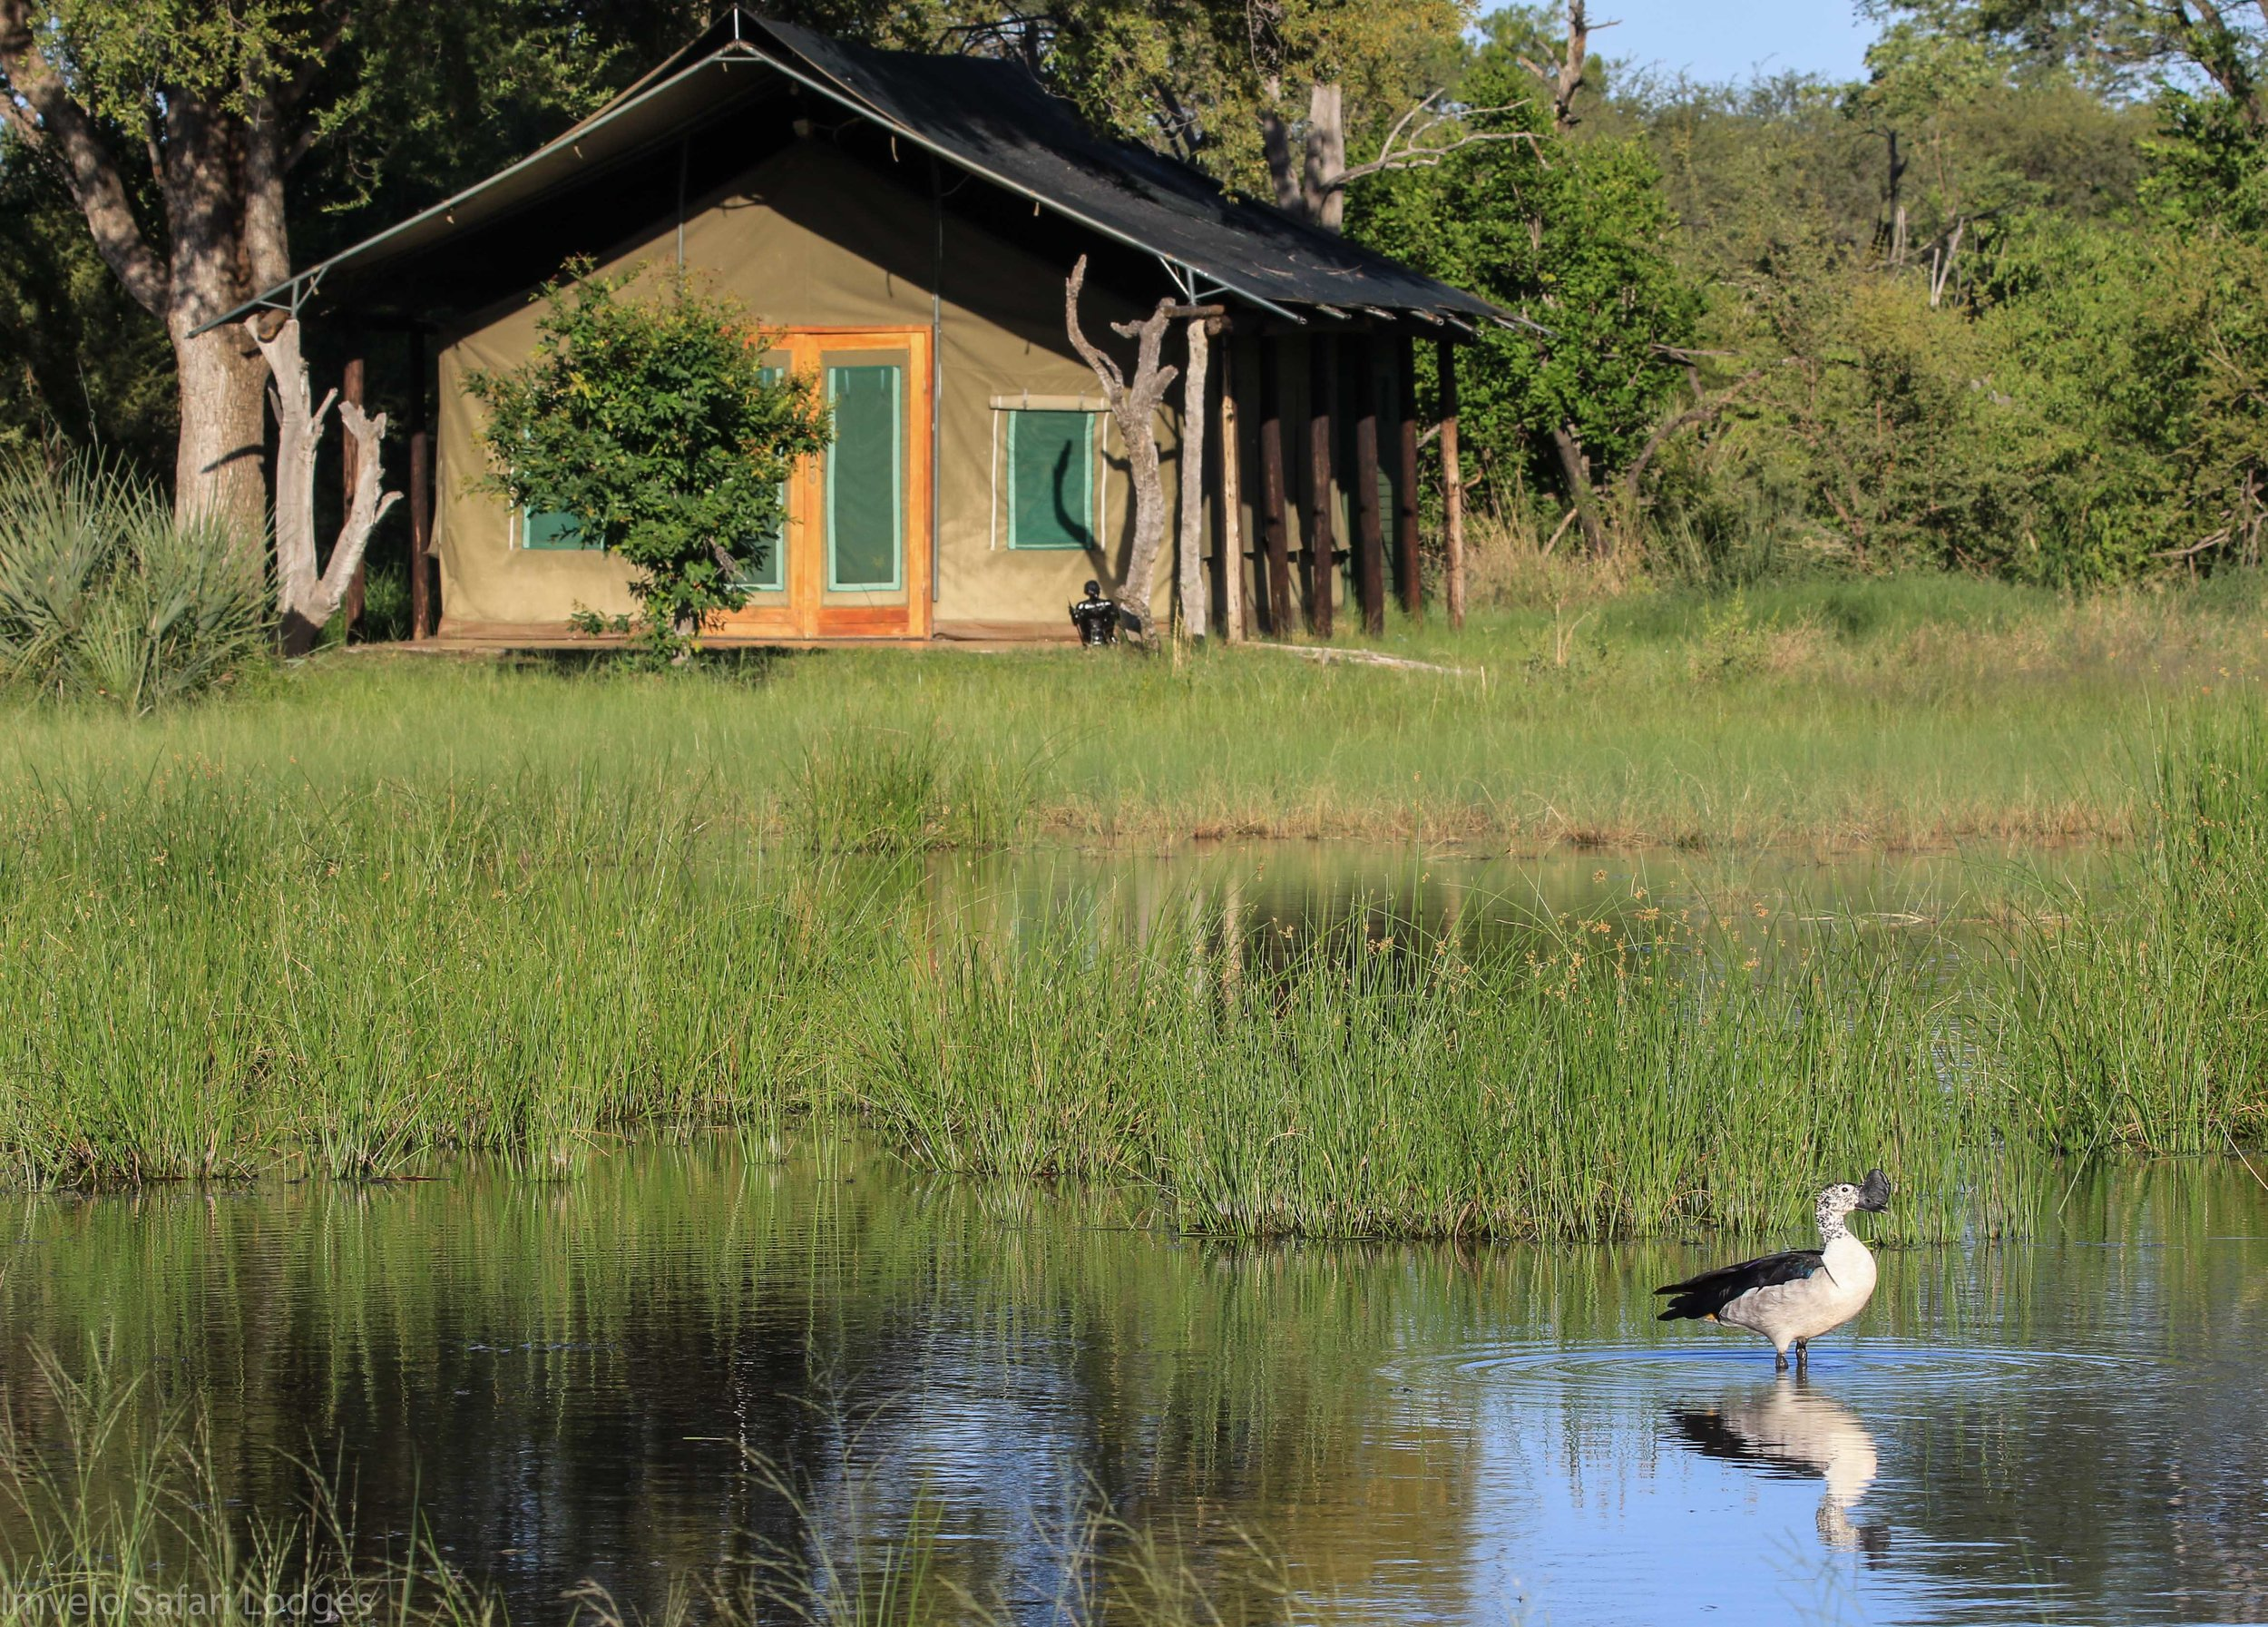 14b - Imvelo Safari Lodges - Bomani - Spurwing tent and Comb Duck drake.jpg